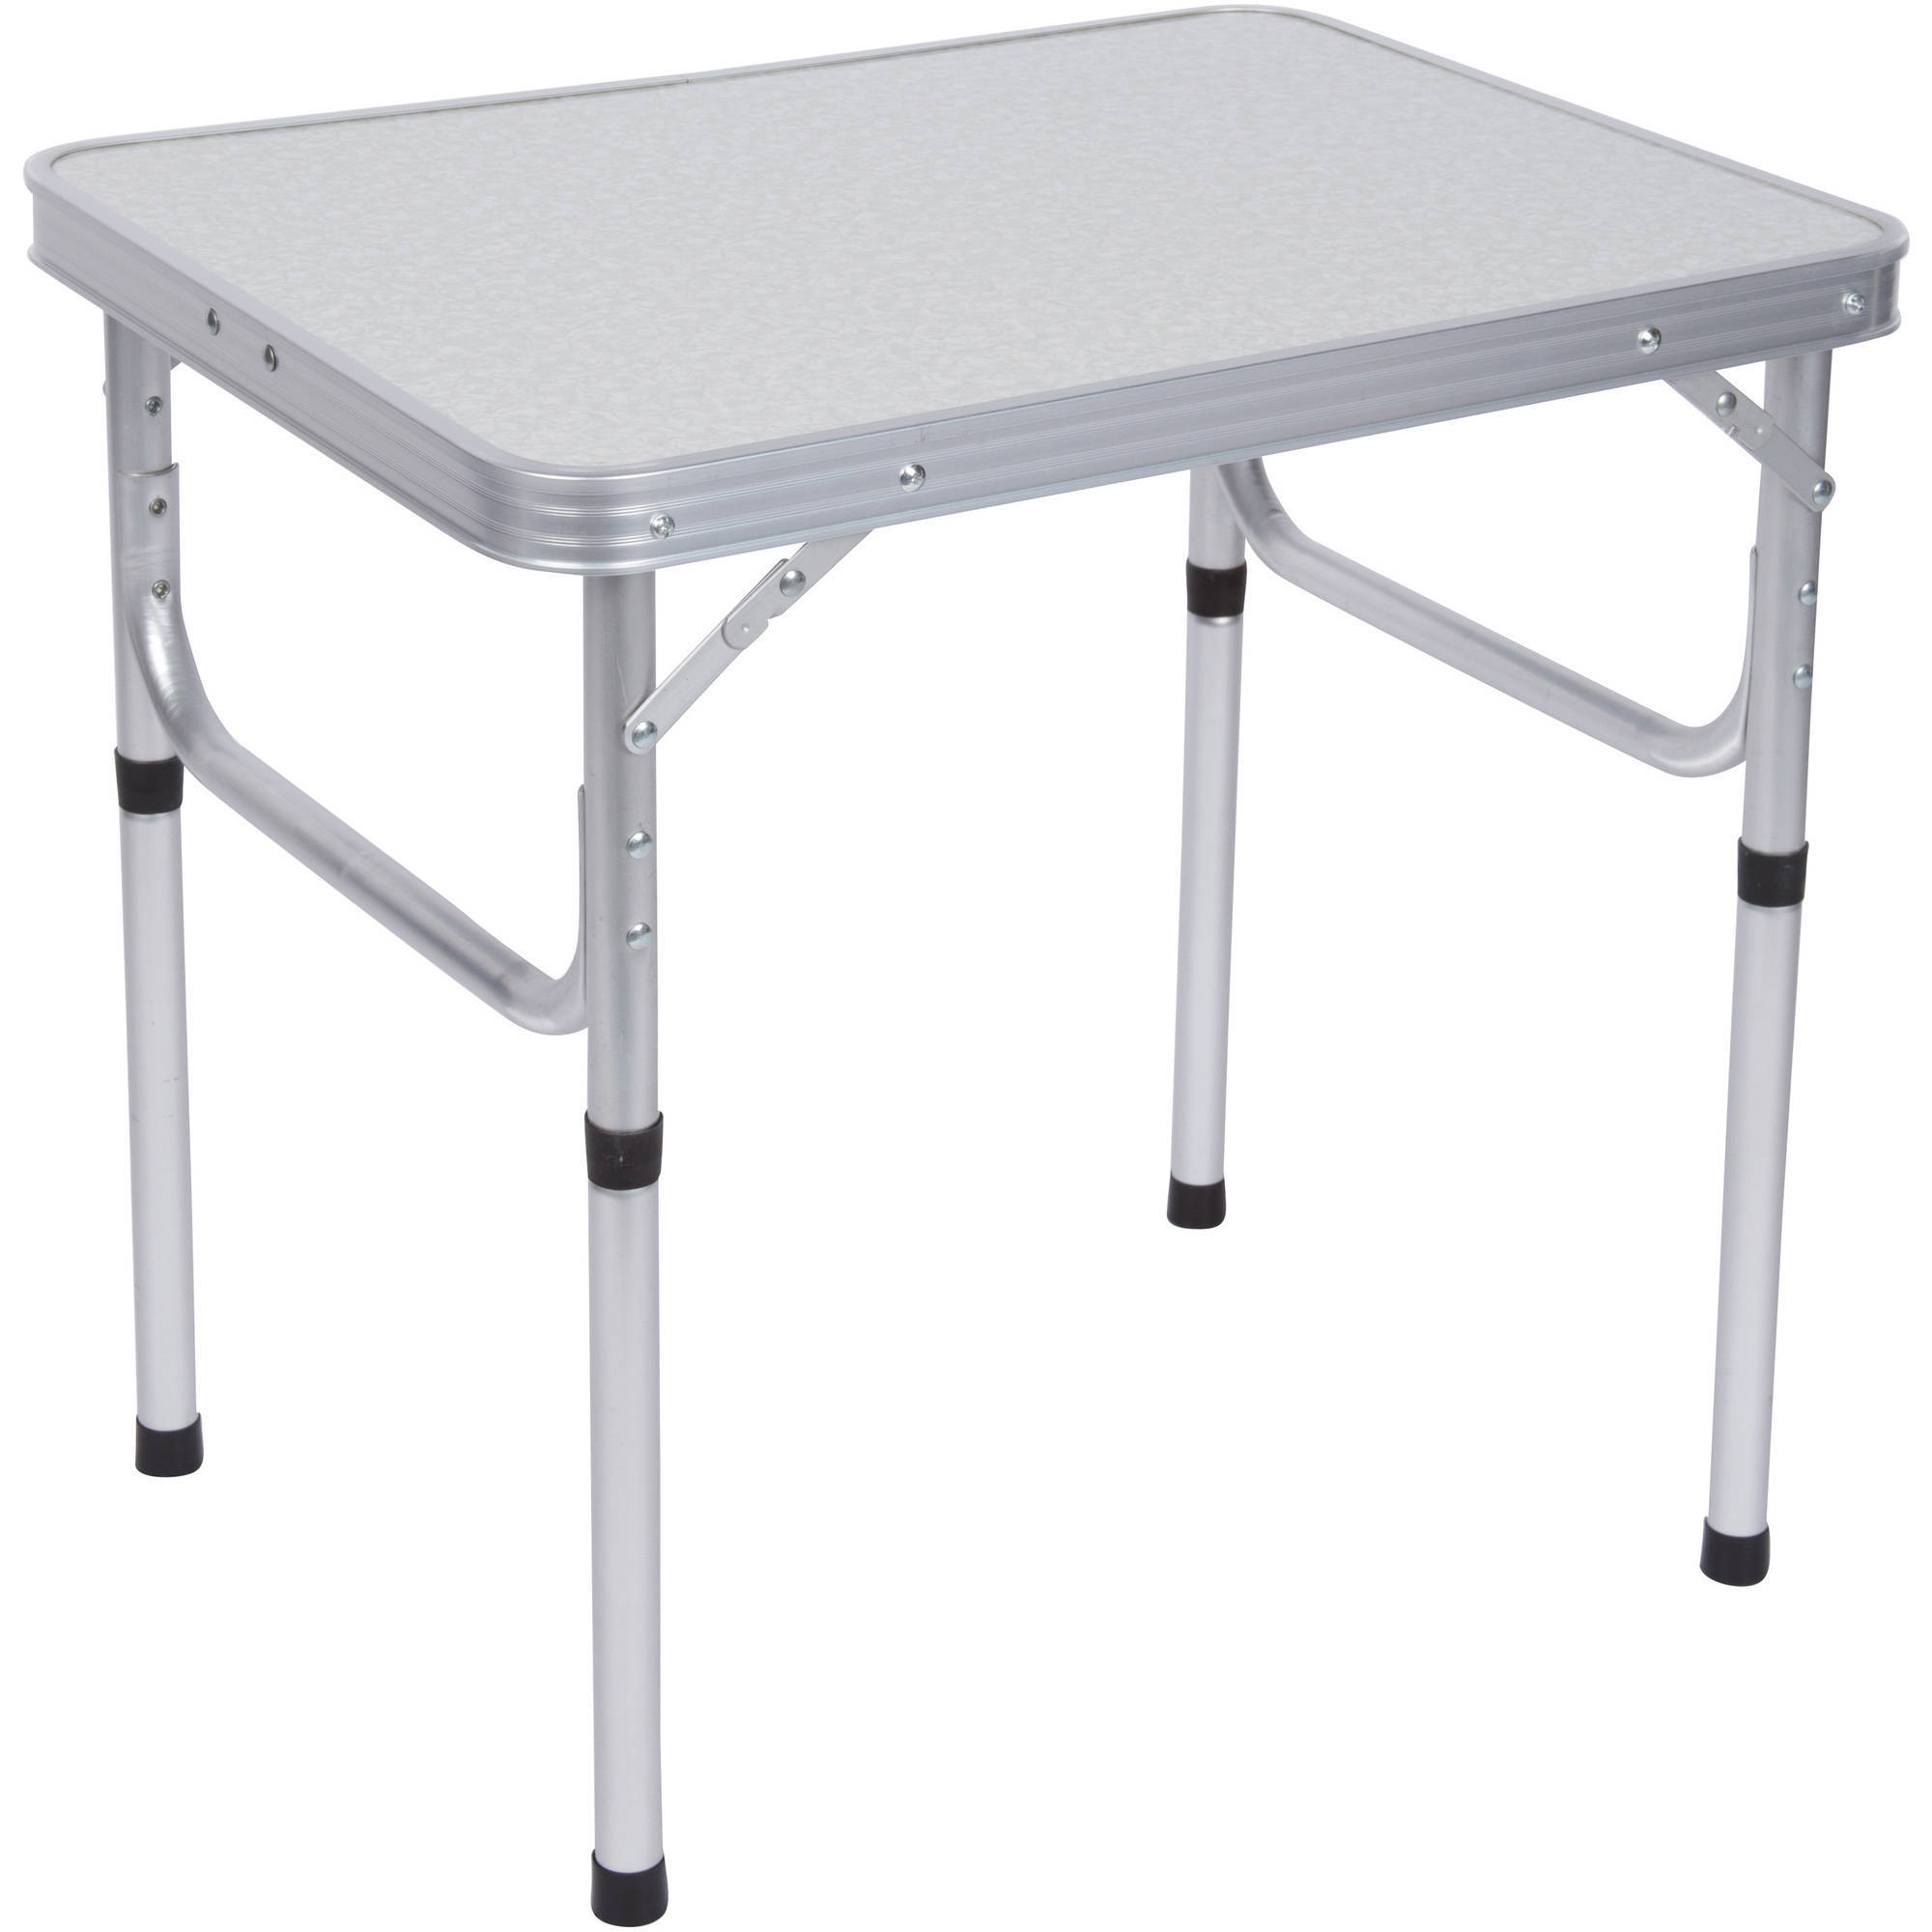 Aluminum Adjustable Portable Folding Camp Table With Carry Handle By Trademark Innovations by Trademark Innovations